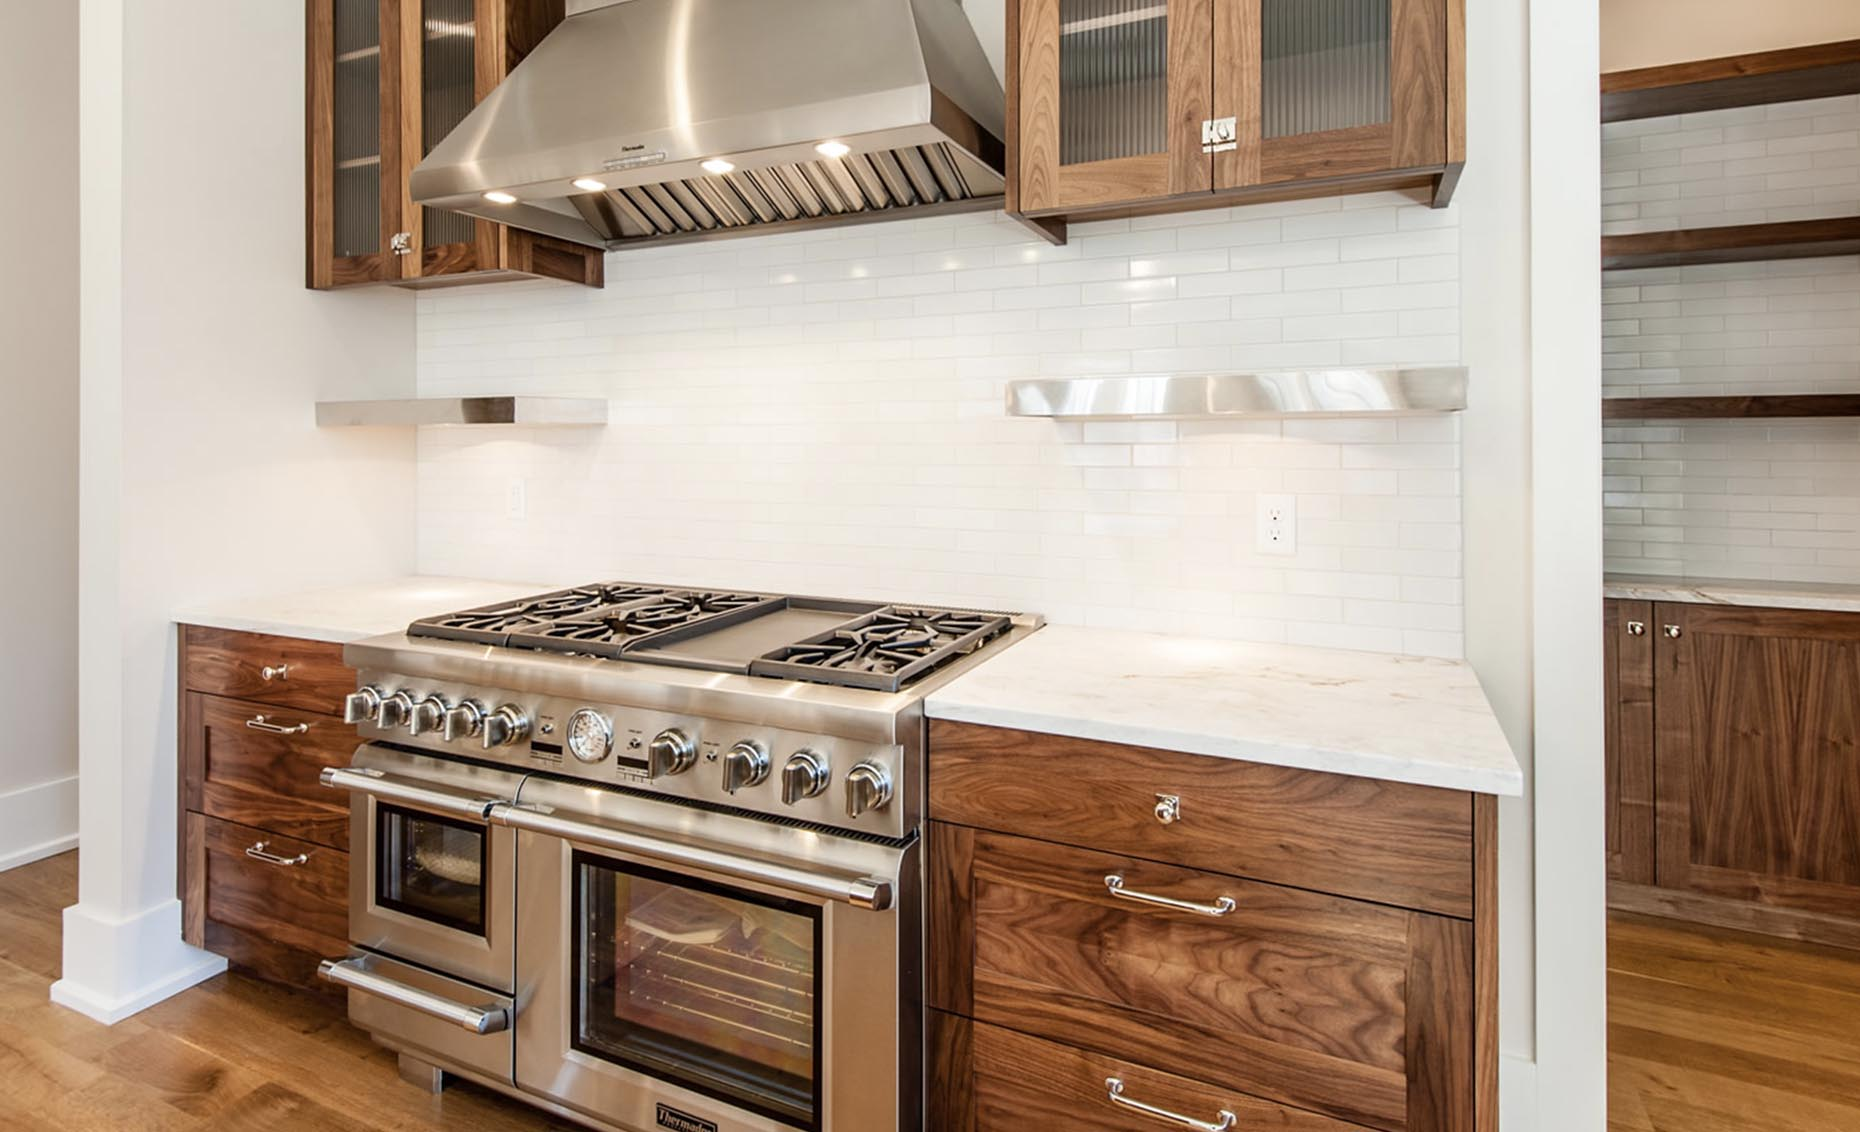 The Bungalow House Kitchen with Stainless Steel Gas Range